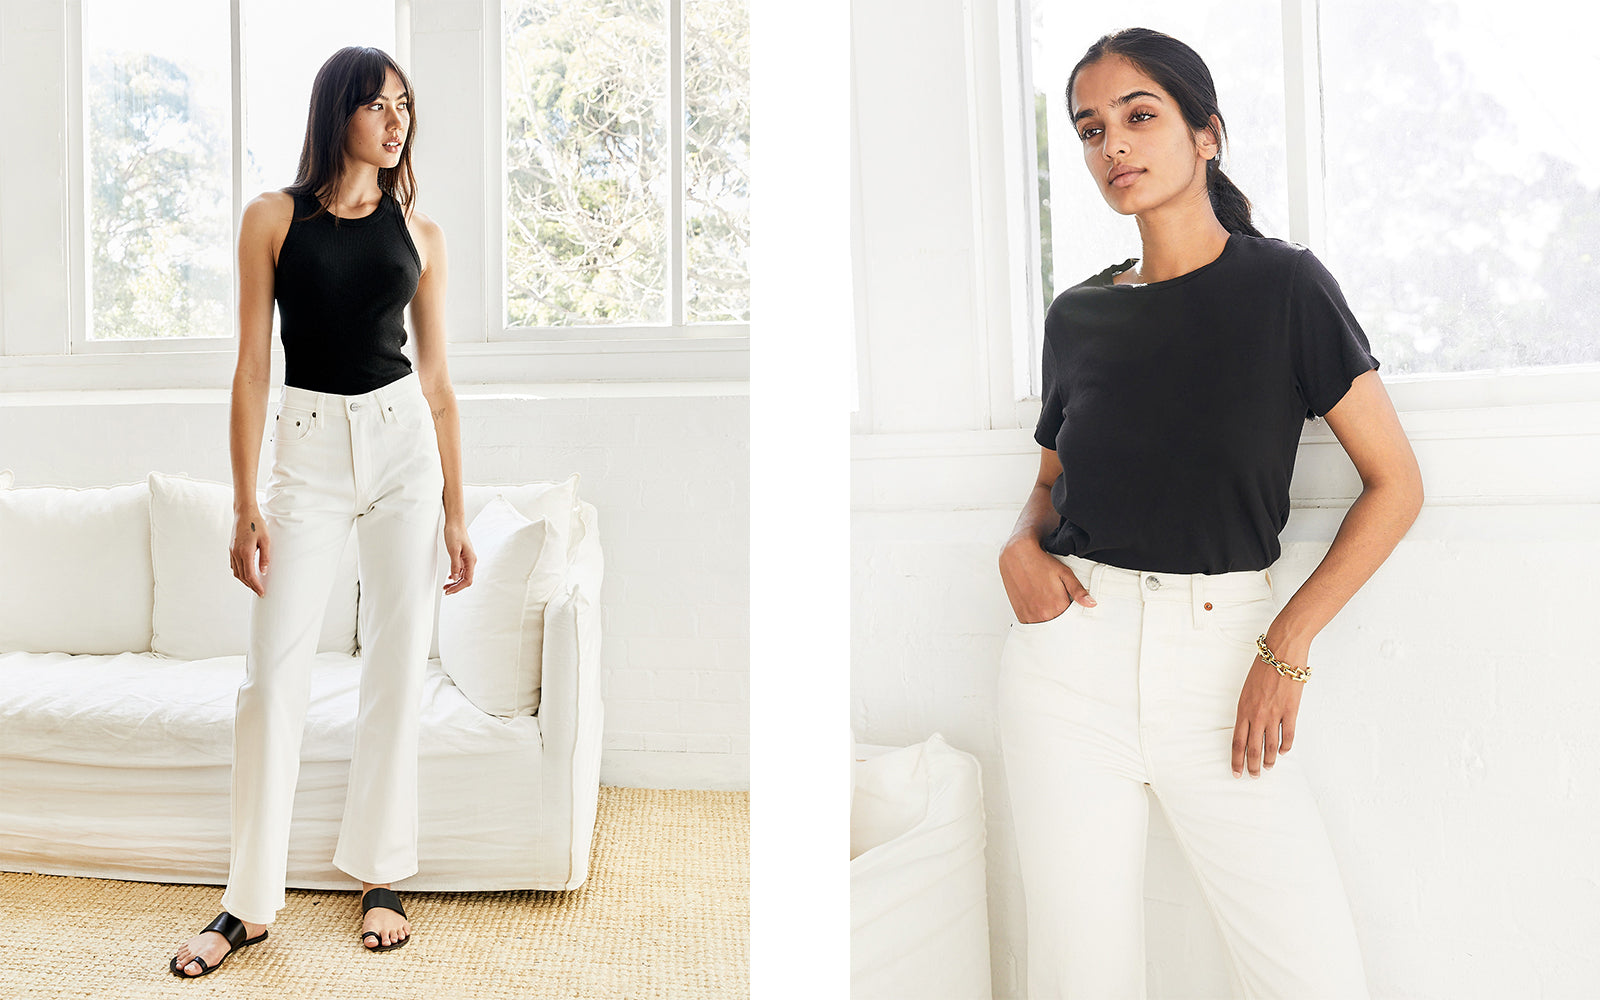 Outfit repeating: black tee and white jeans